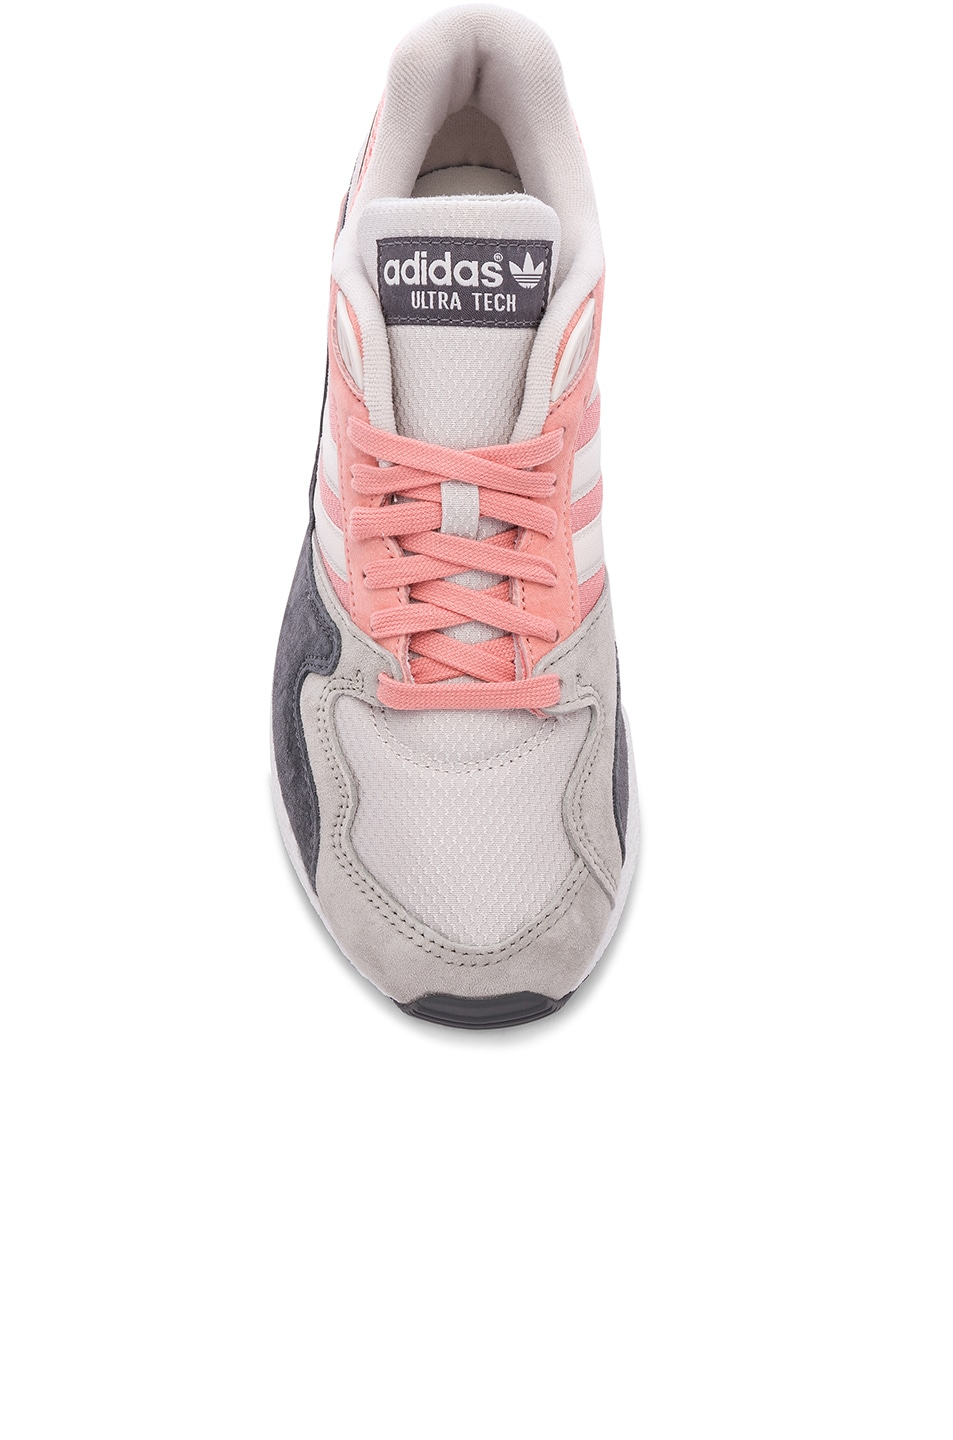 Image 4 of adidas Originals Oregon Ultra Tech in Trace Pink & Crystal White & Black